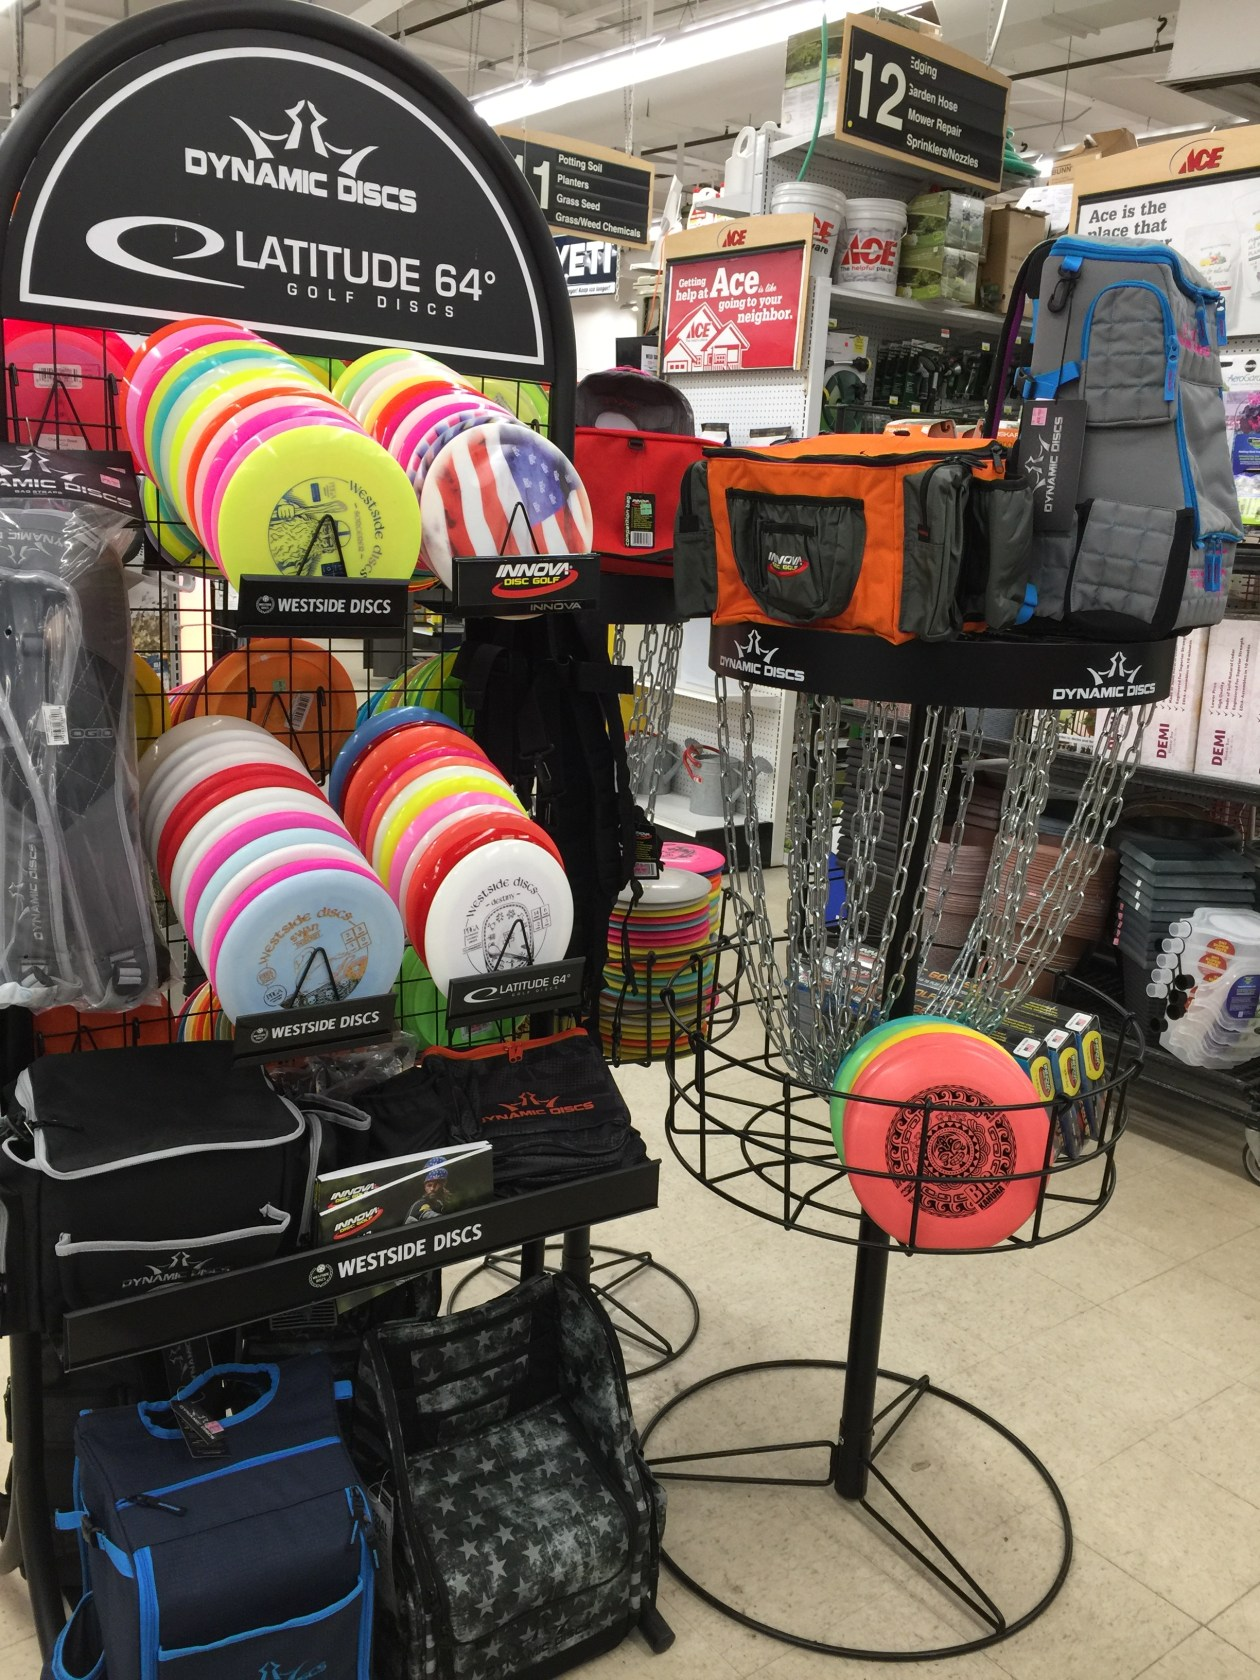 Latitude 64, Disc Golf